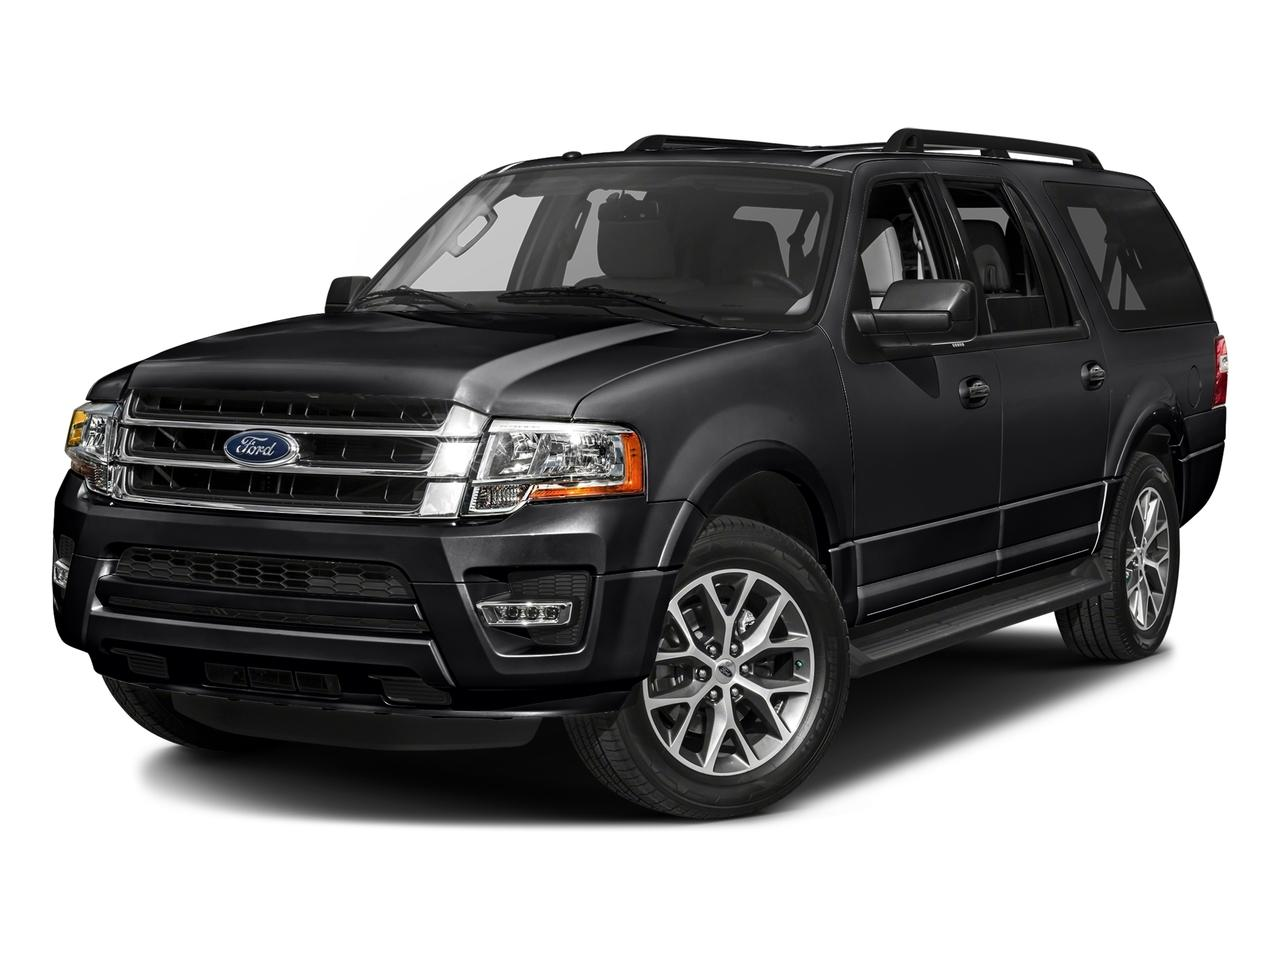 2016 Ford Expedition EL Vehicle Photo in Bowie, MD 20716